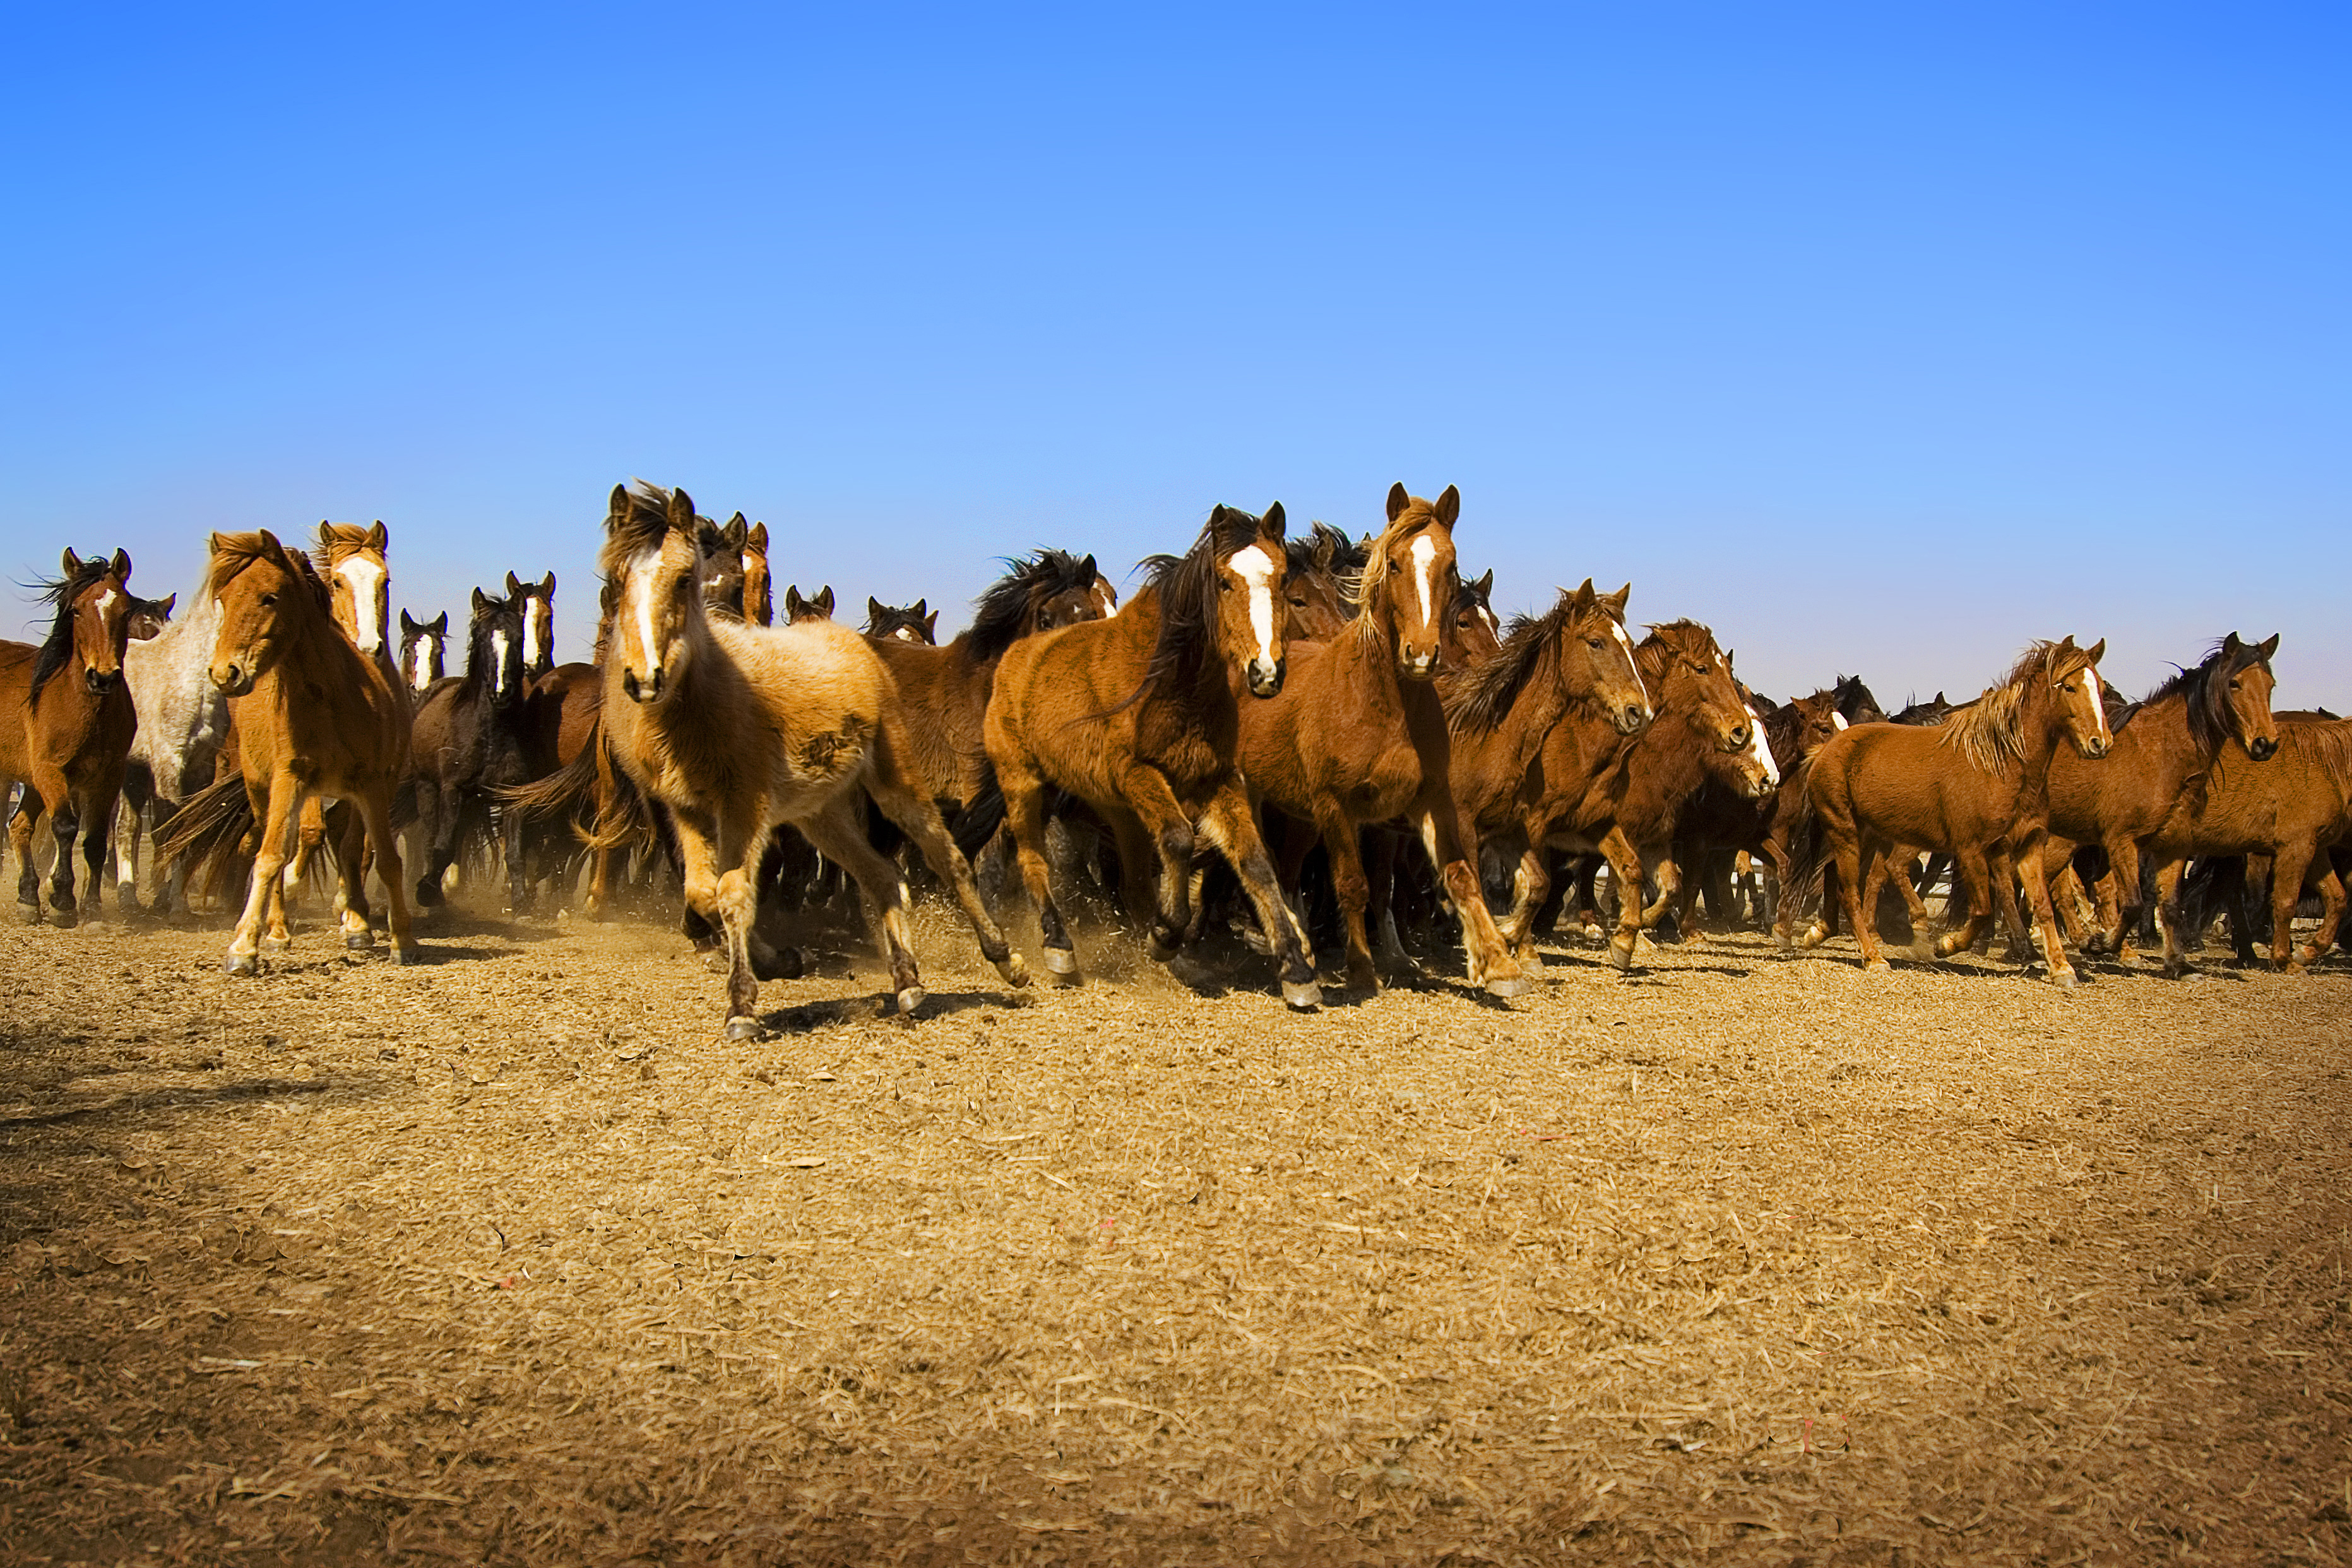 Charging Colts by Ree Drummond, www.thepioneerwoman.com